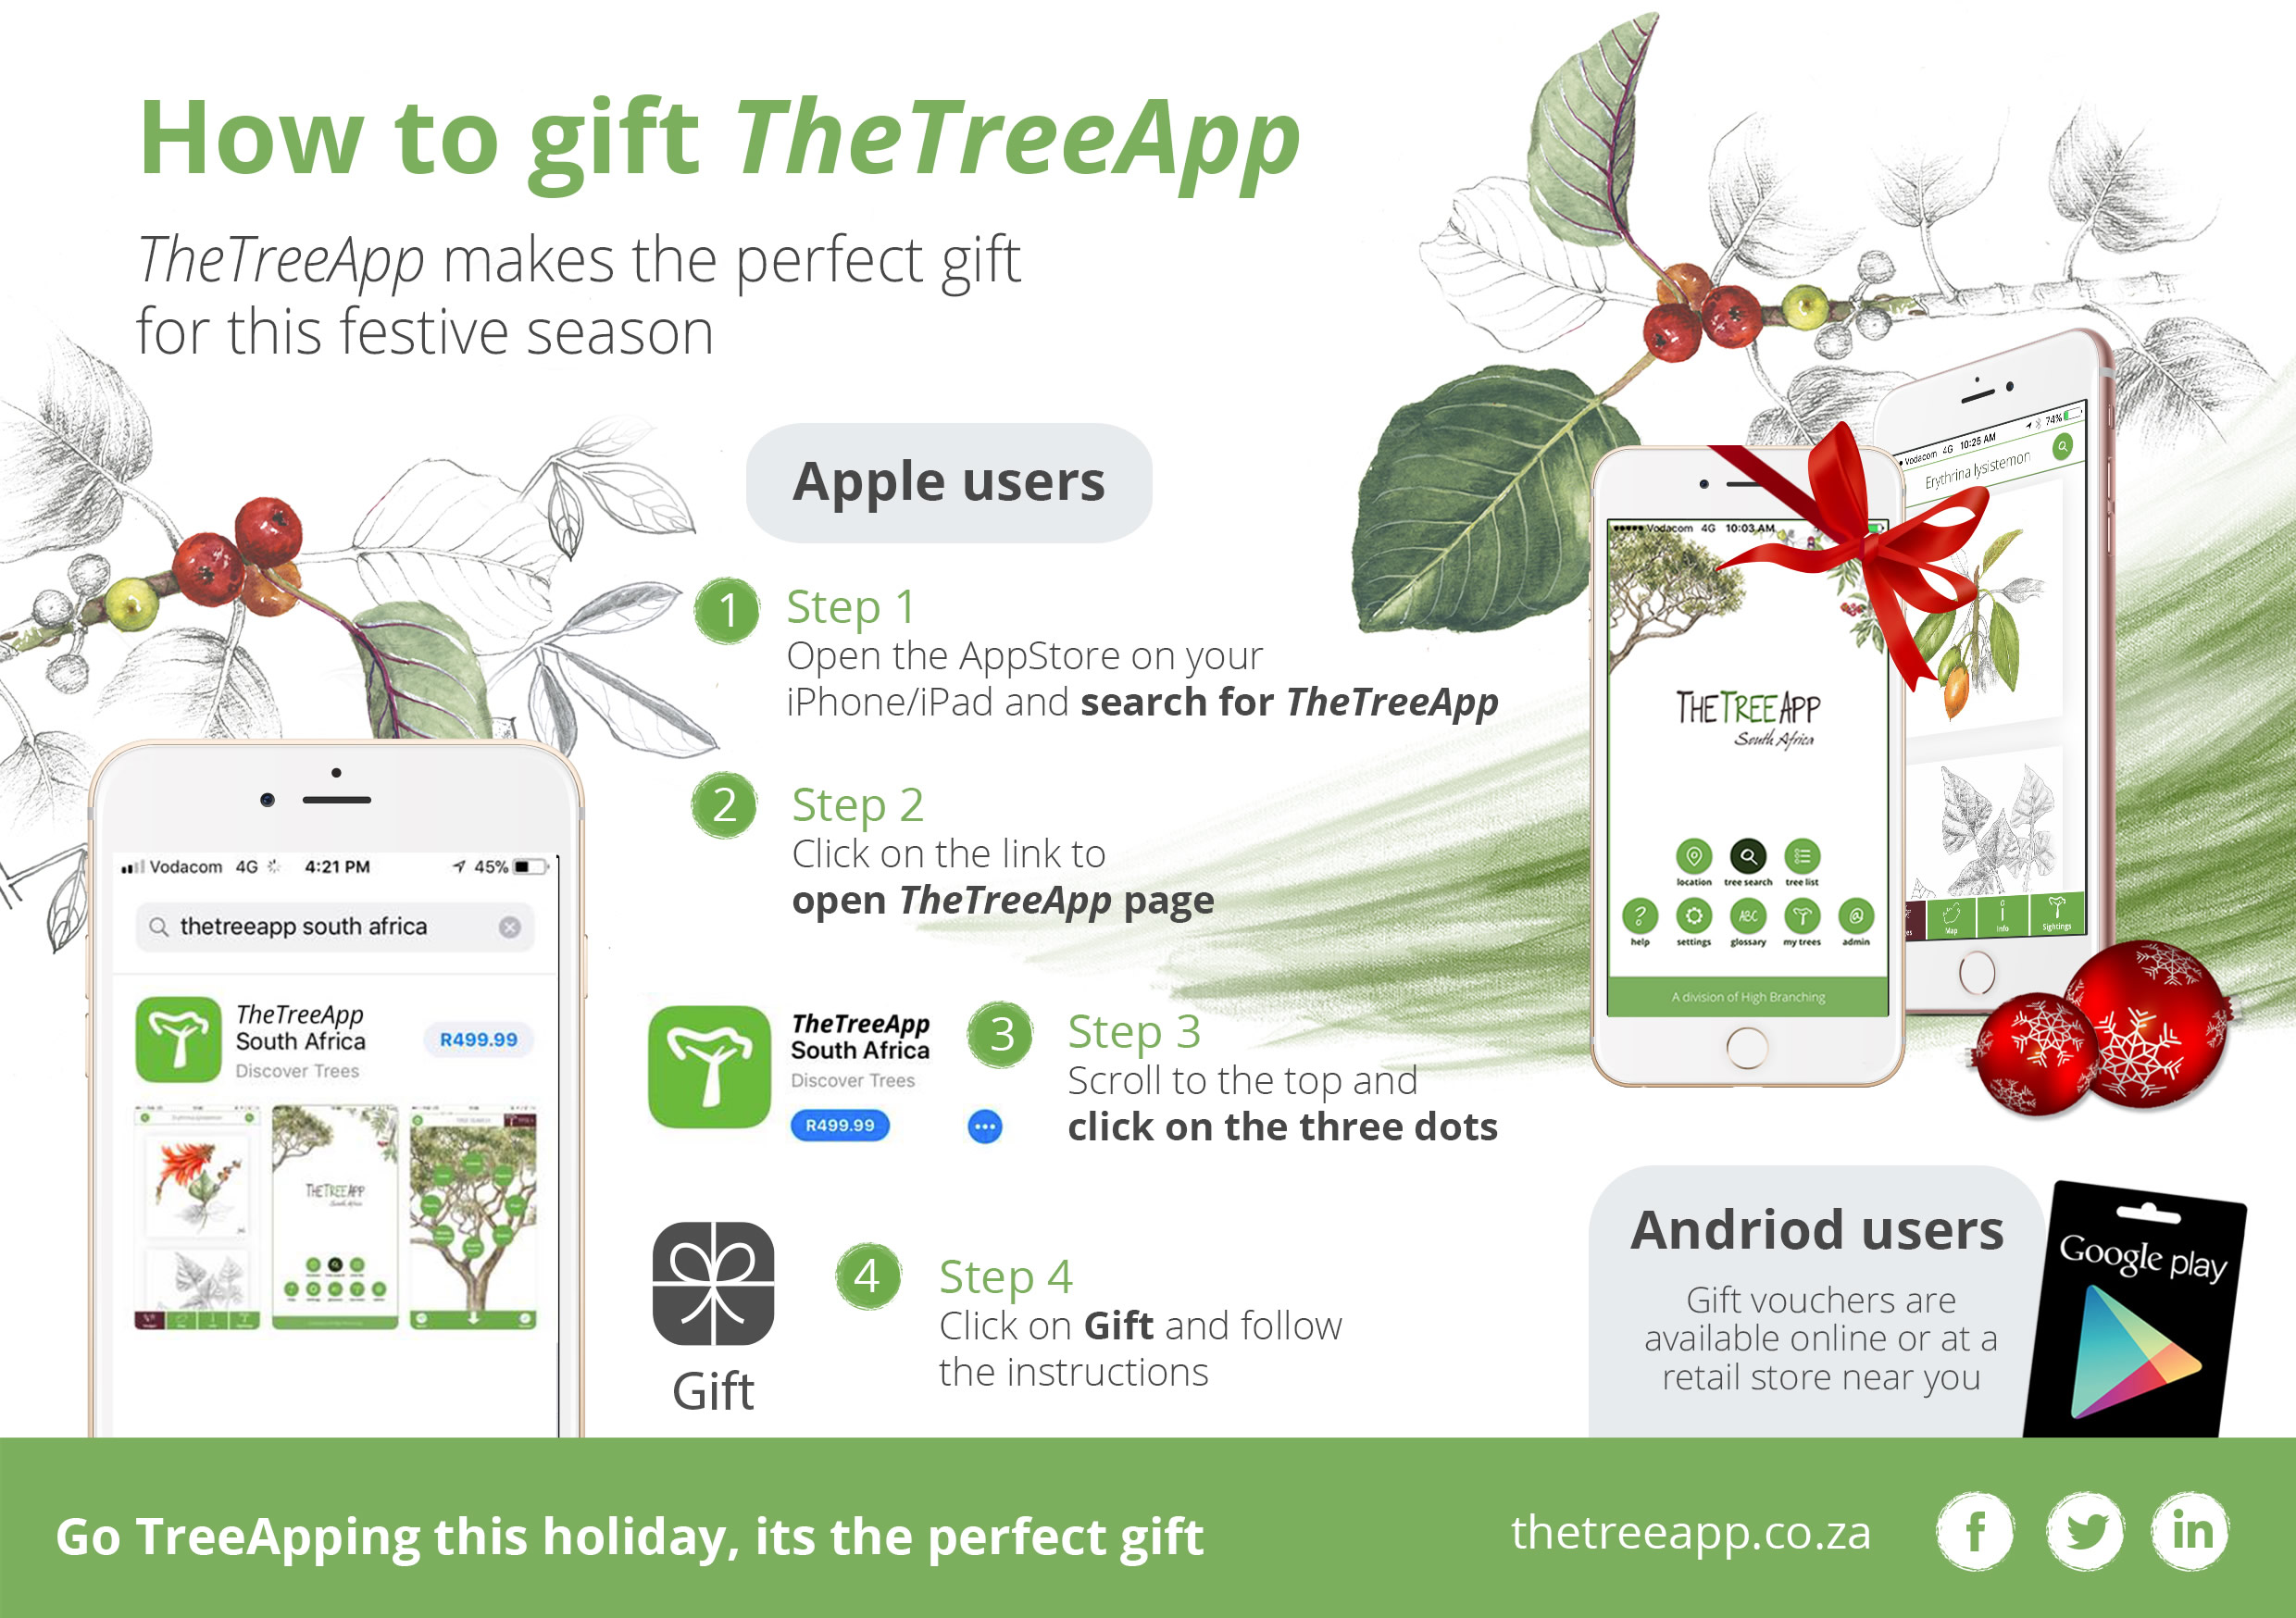 How to Gift TheTreeApp